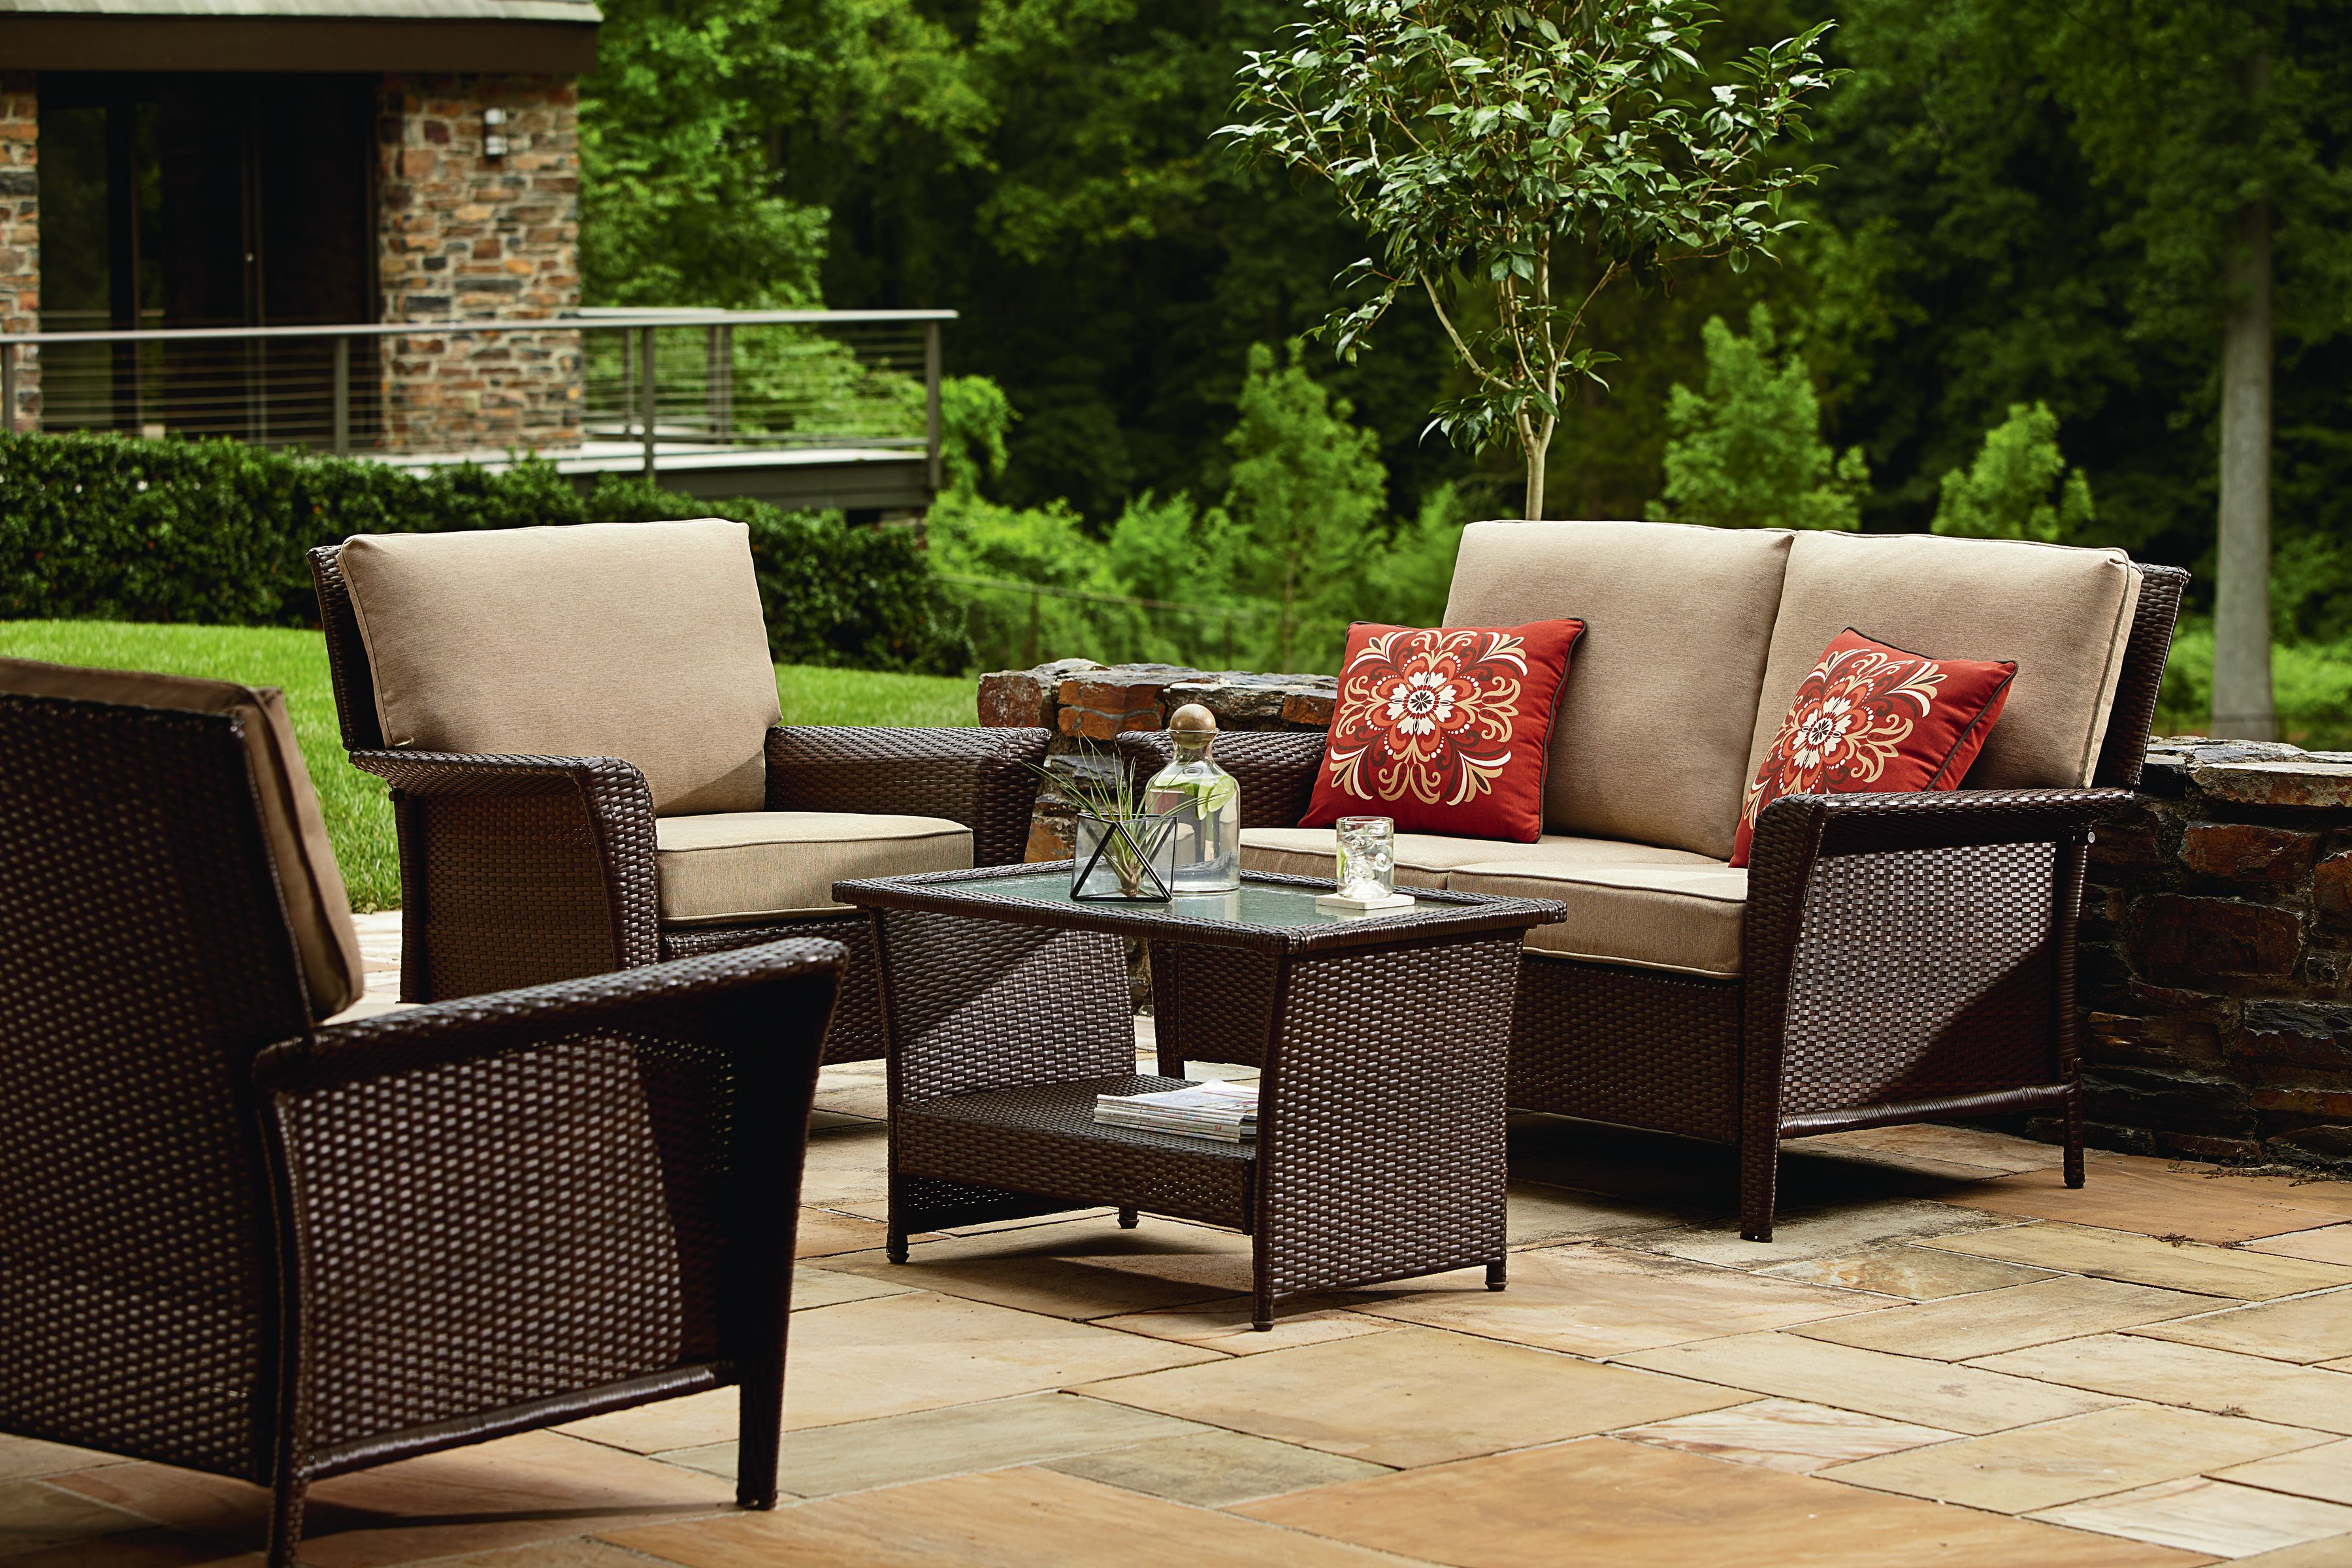 Make Yourself At Home With The Ty Pennington Style Parkside Deep Seating Set In Tan